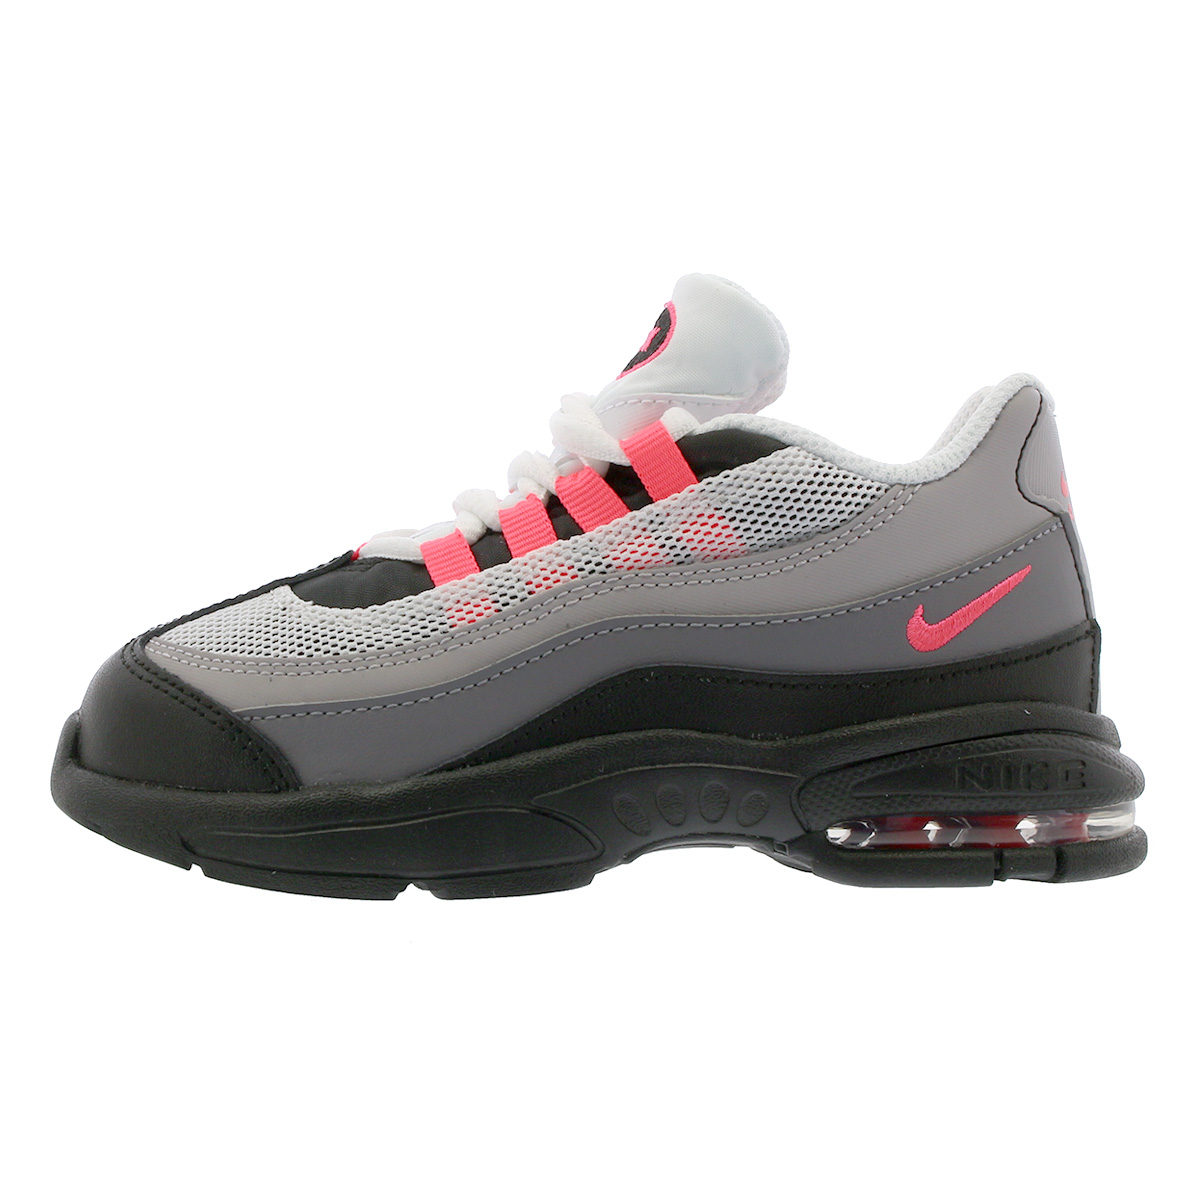 LOWTEX BIG-SMALL SHOP  NIKE AIR MAX 95 TD Kie Ney AMAX 95 TD BLACK ... 28cd3a469